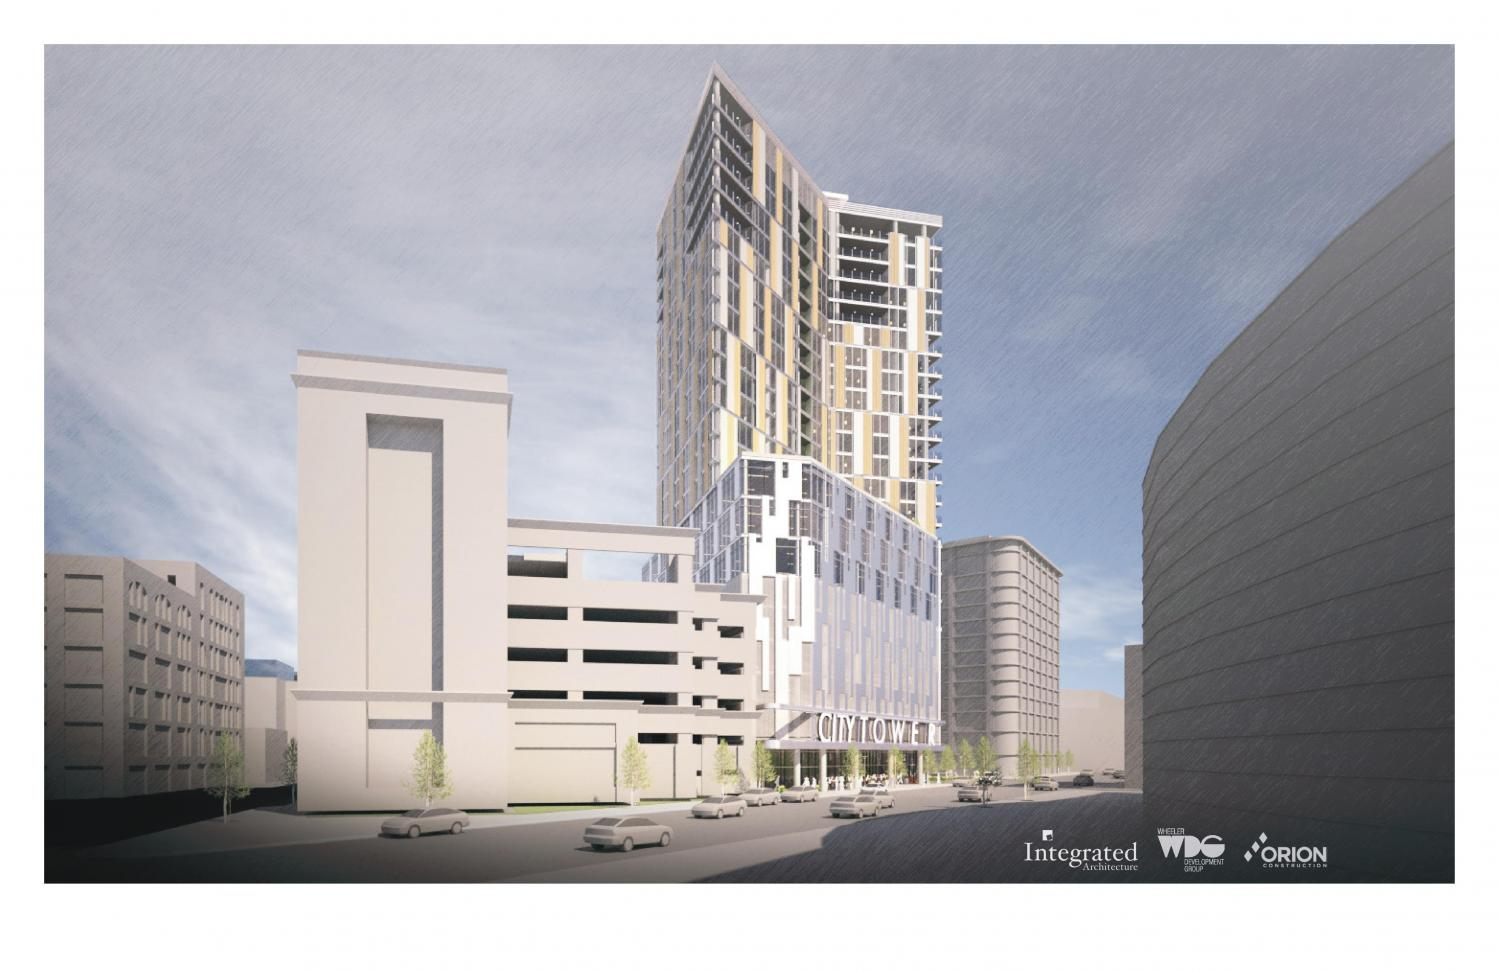 The City of Grand Rapids has plans for a 24 story tower.